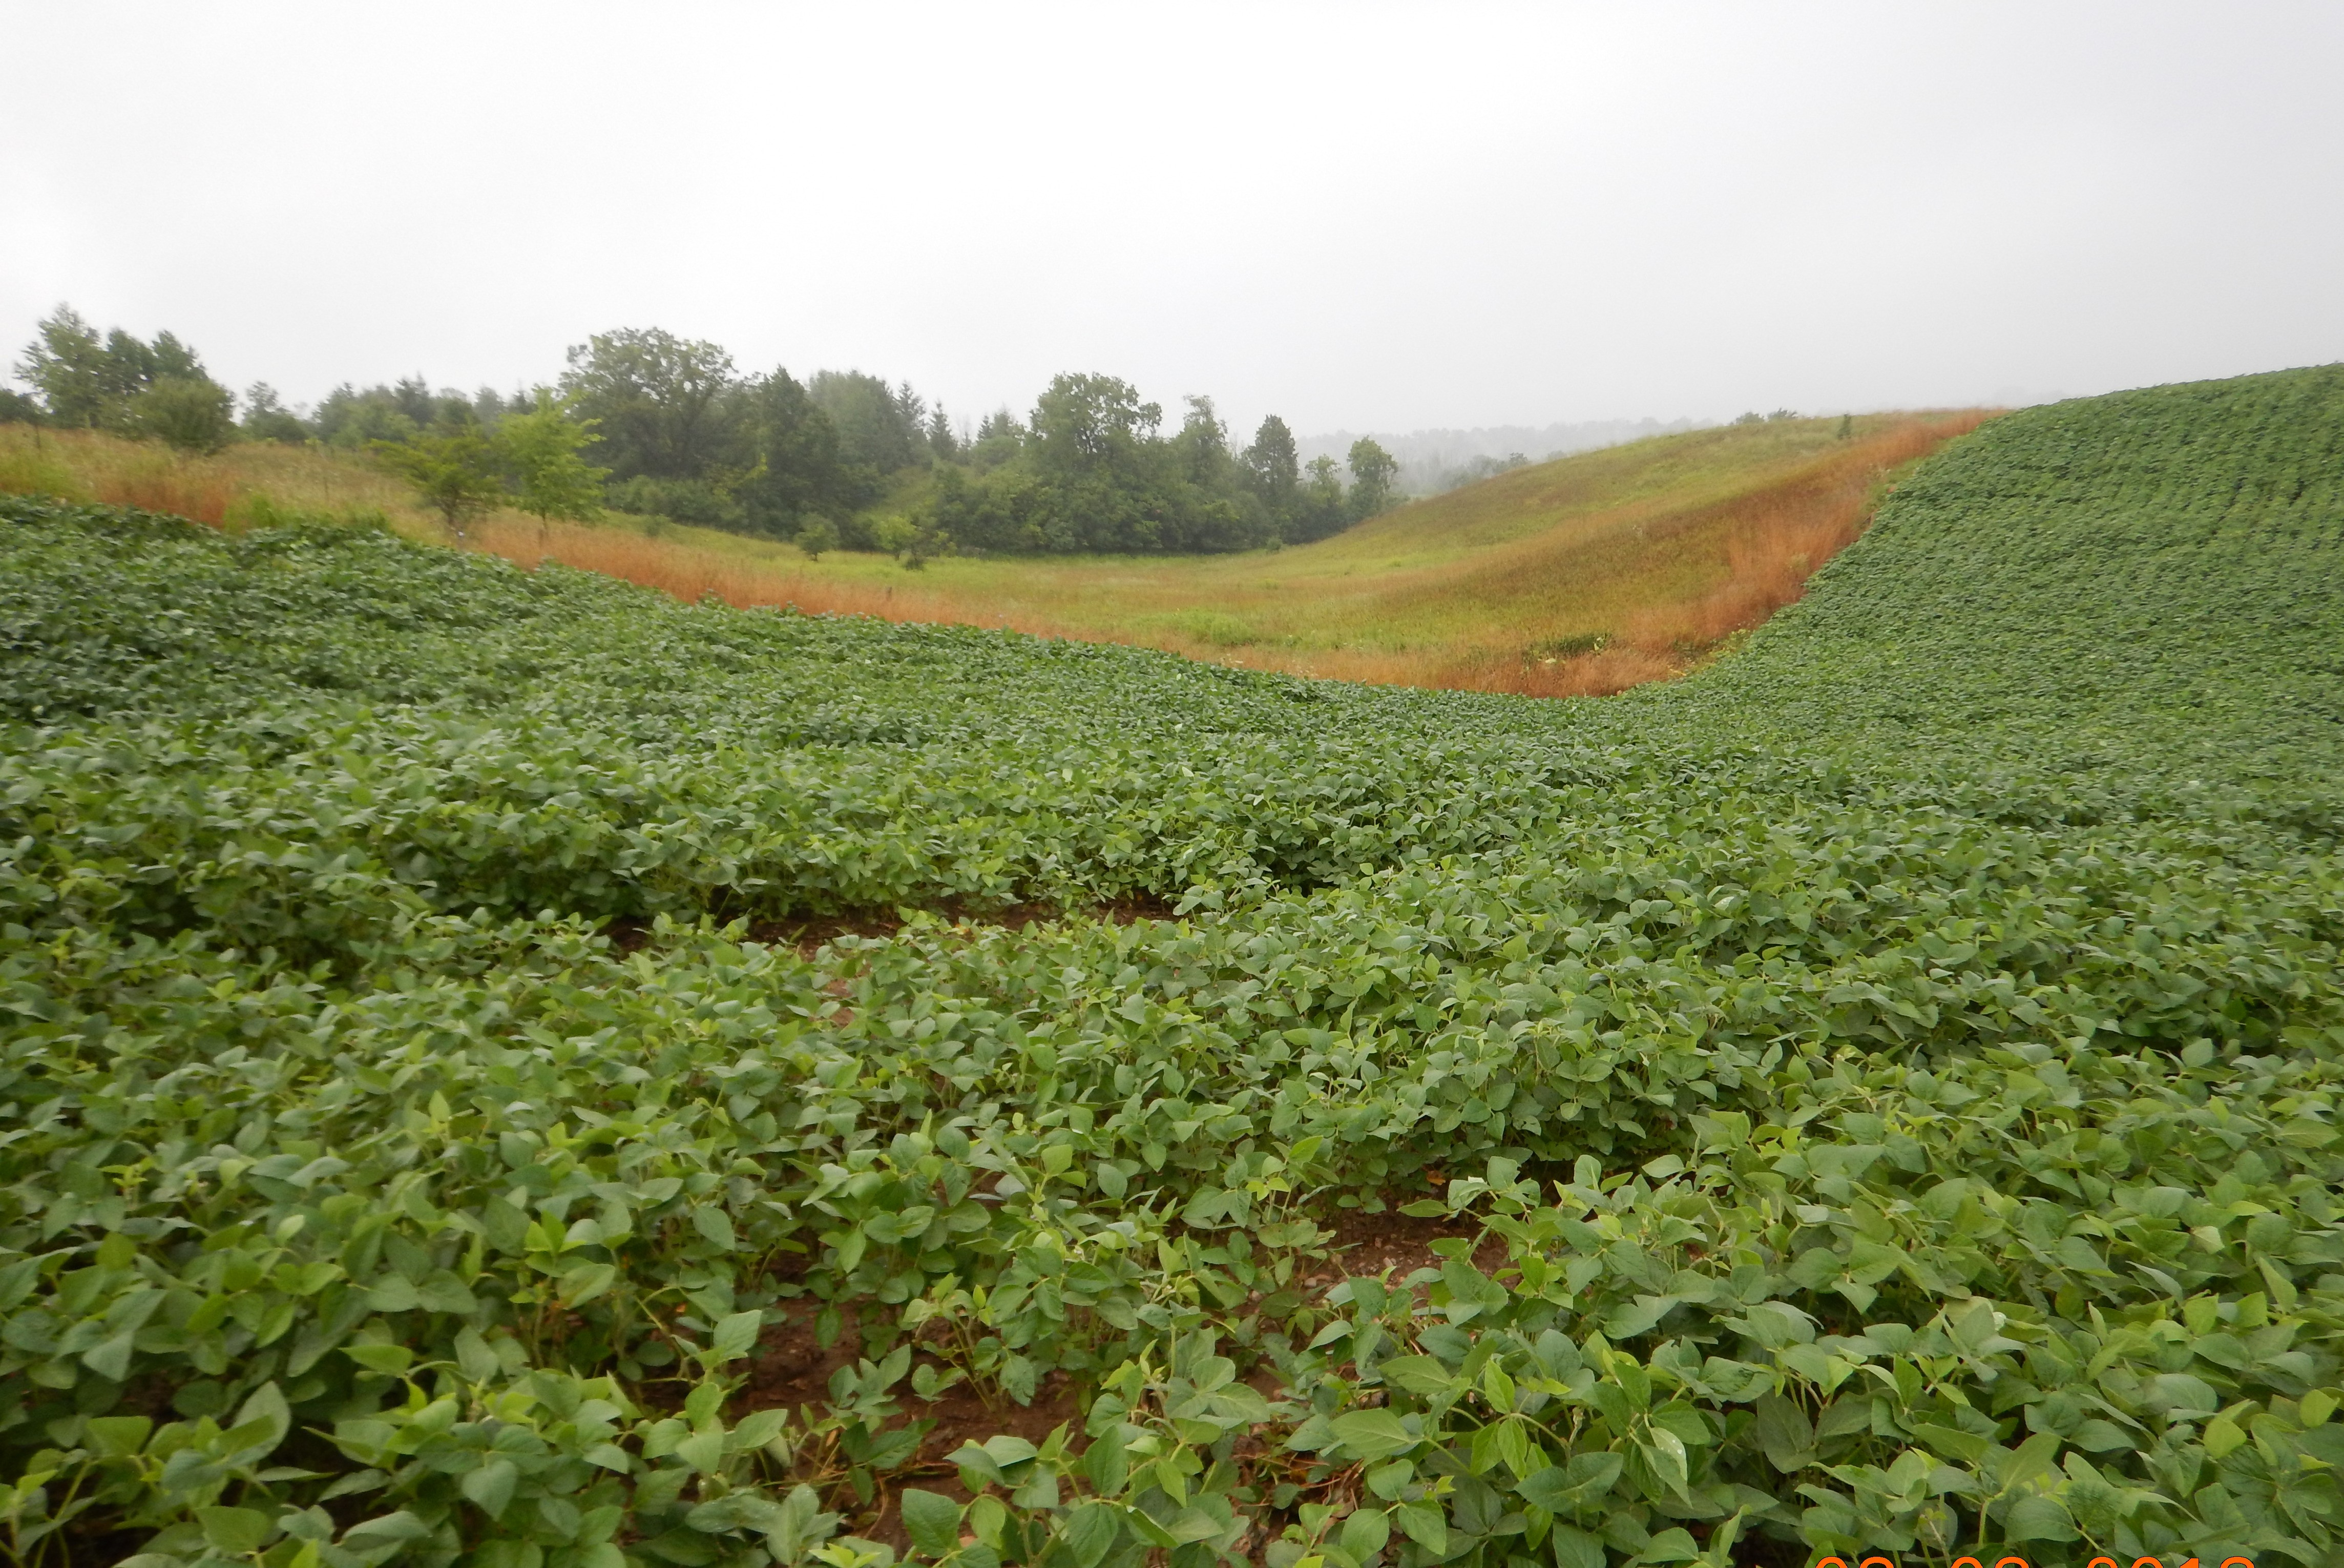 Common field crop production on steeply sloping lands.